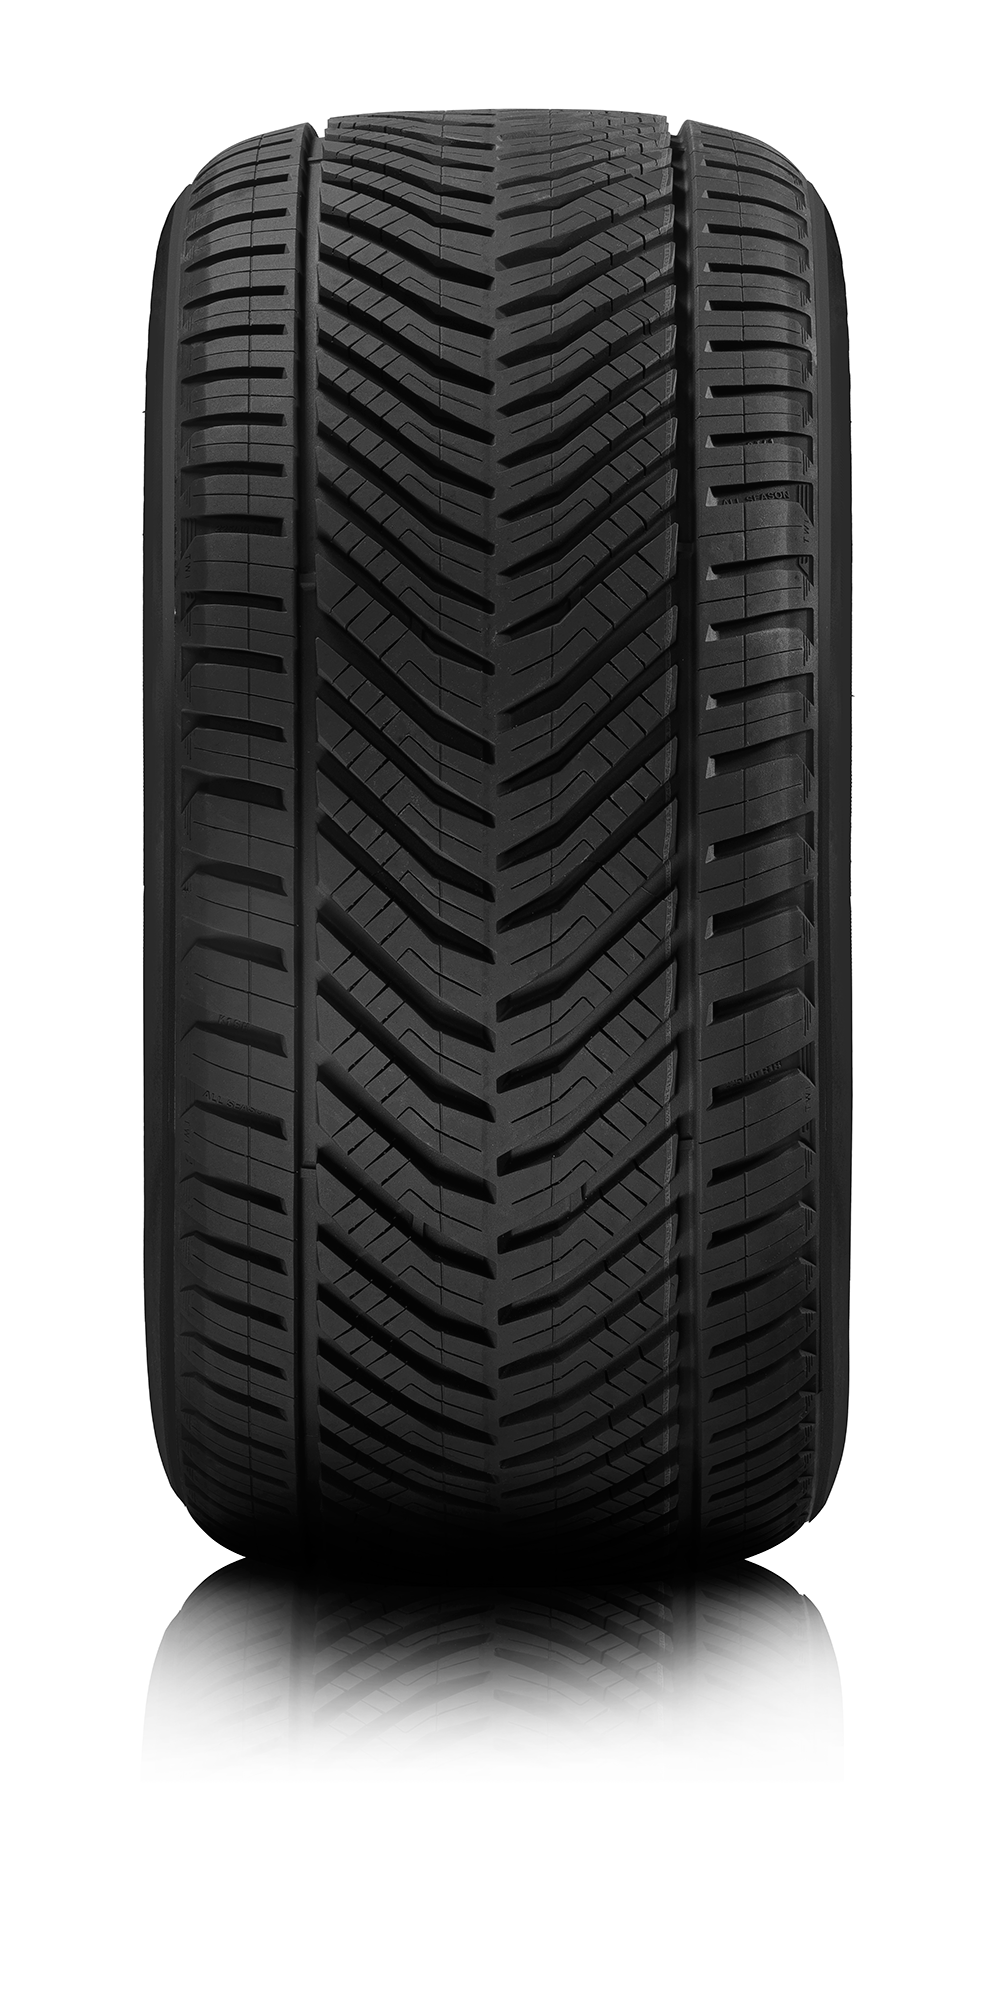 Orium Orium 225/40 R18 92W ALL SEASON XL pneumatici nuovi All Season